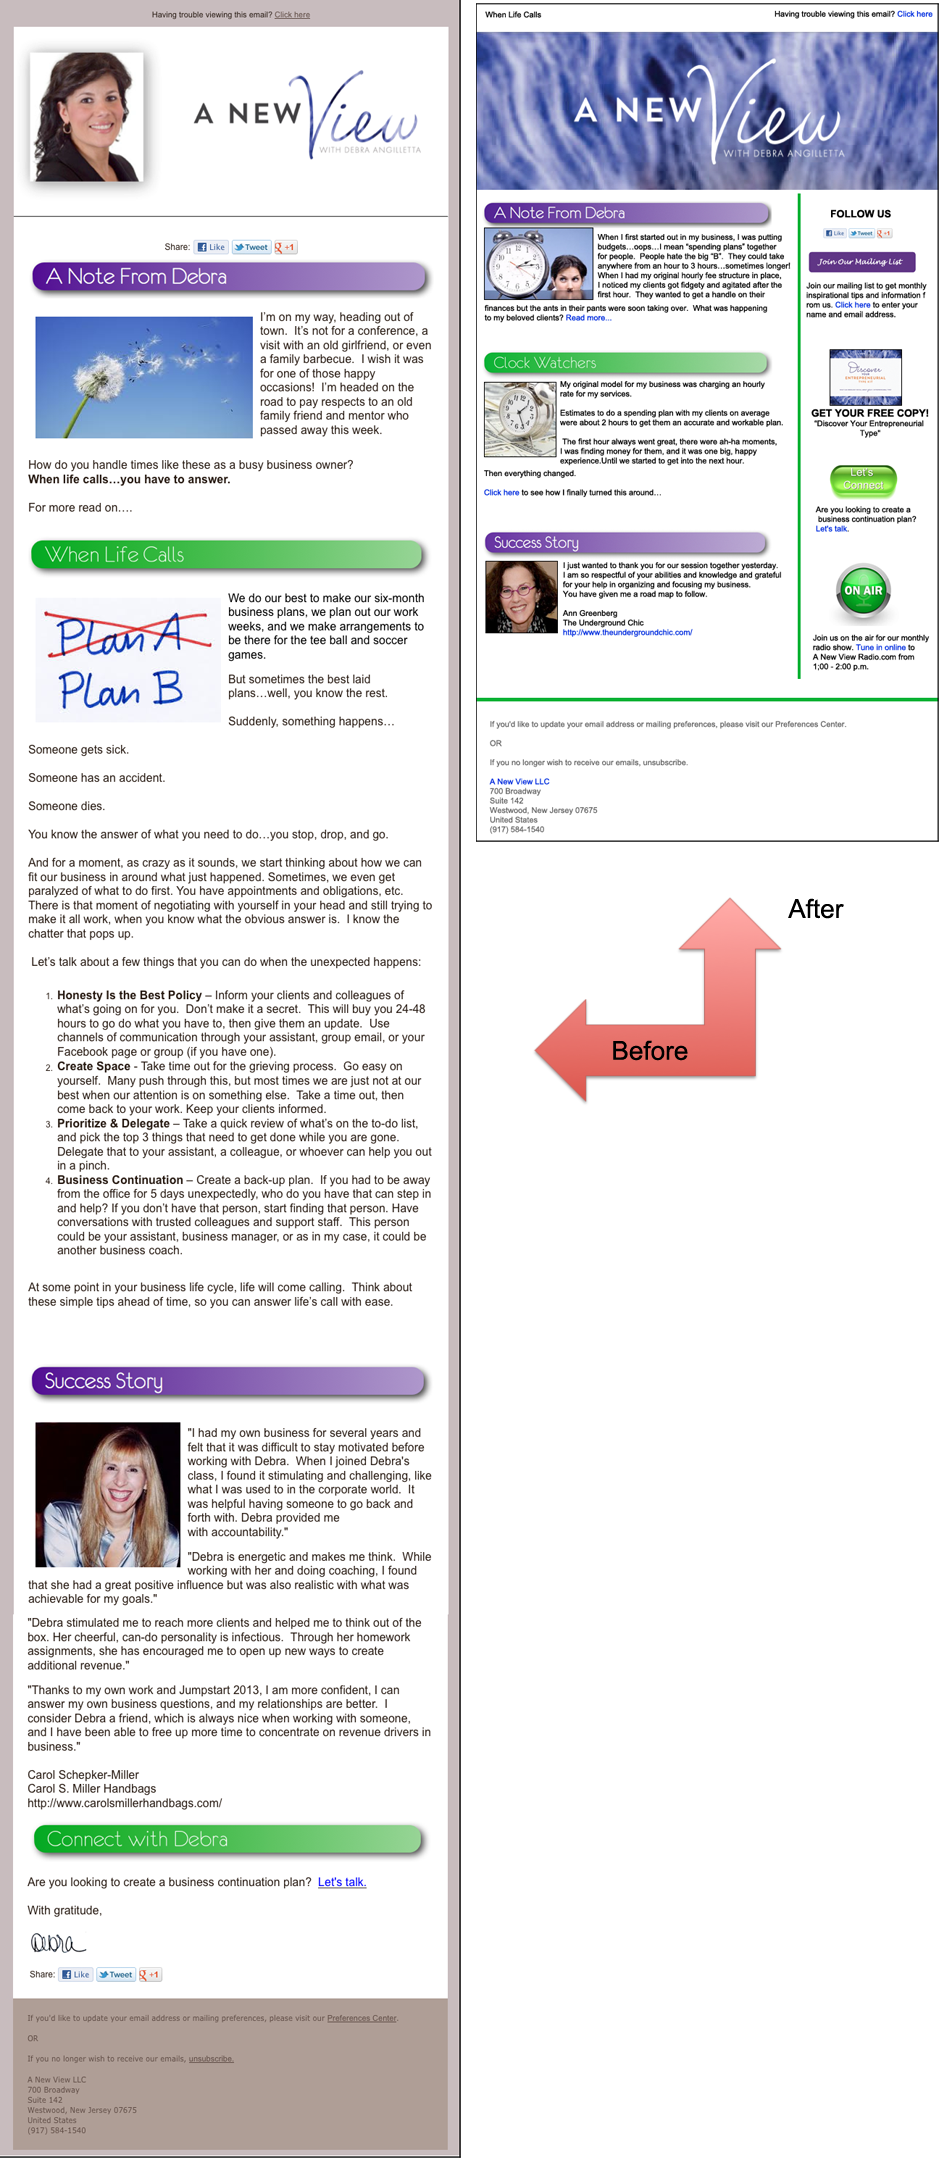 A New View Newsletter Before and After